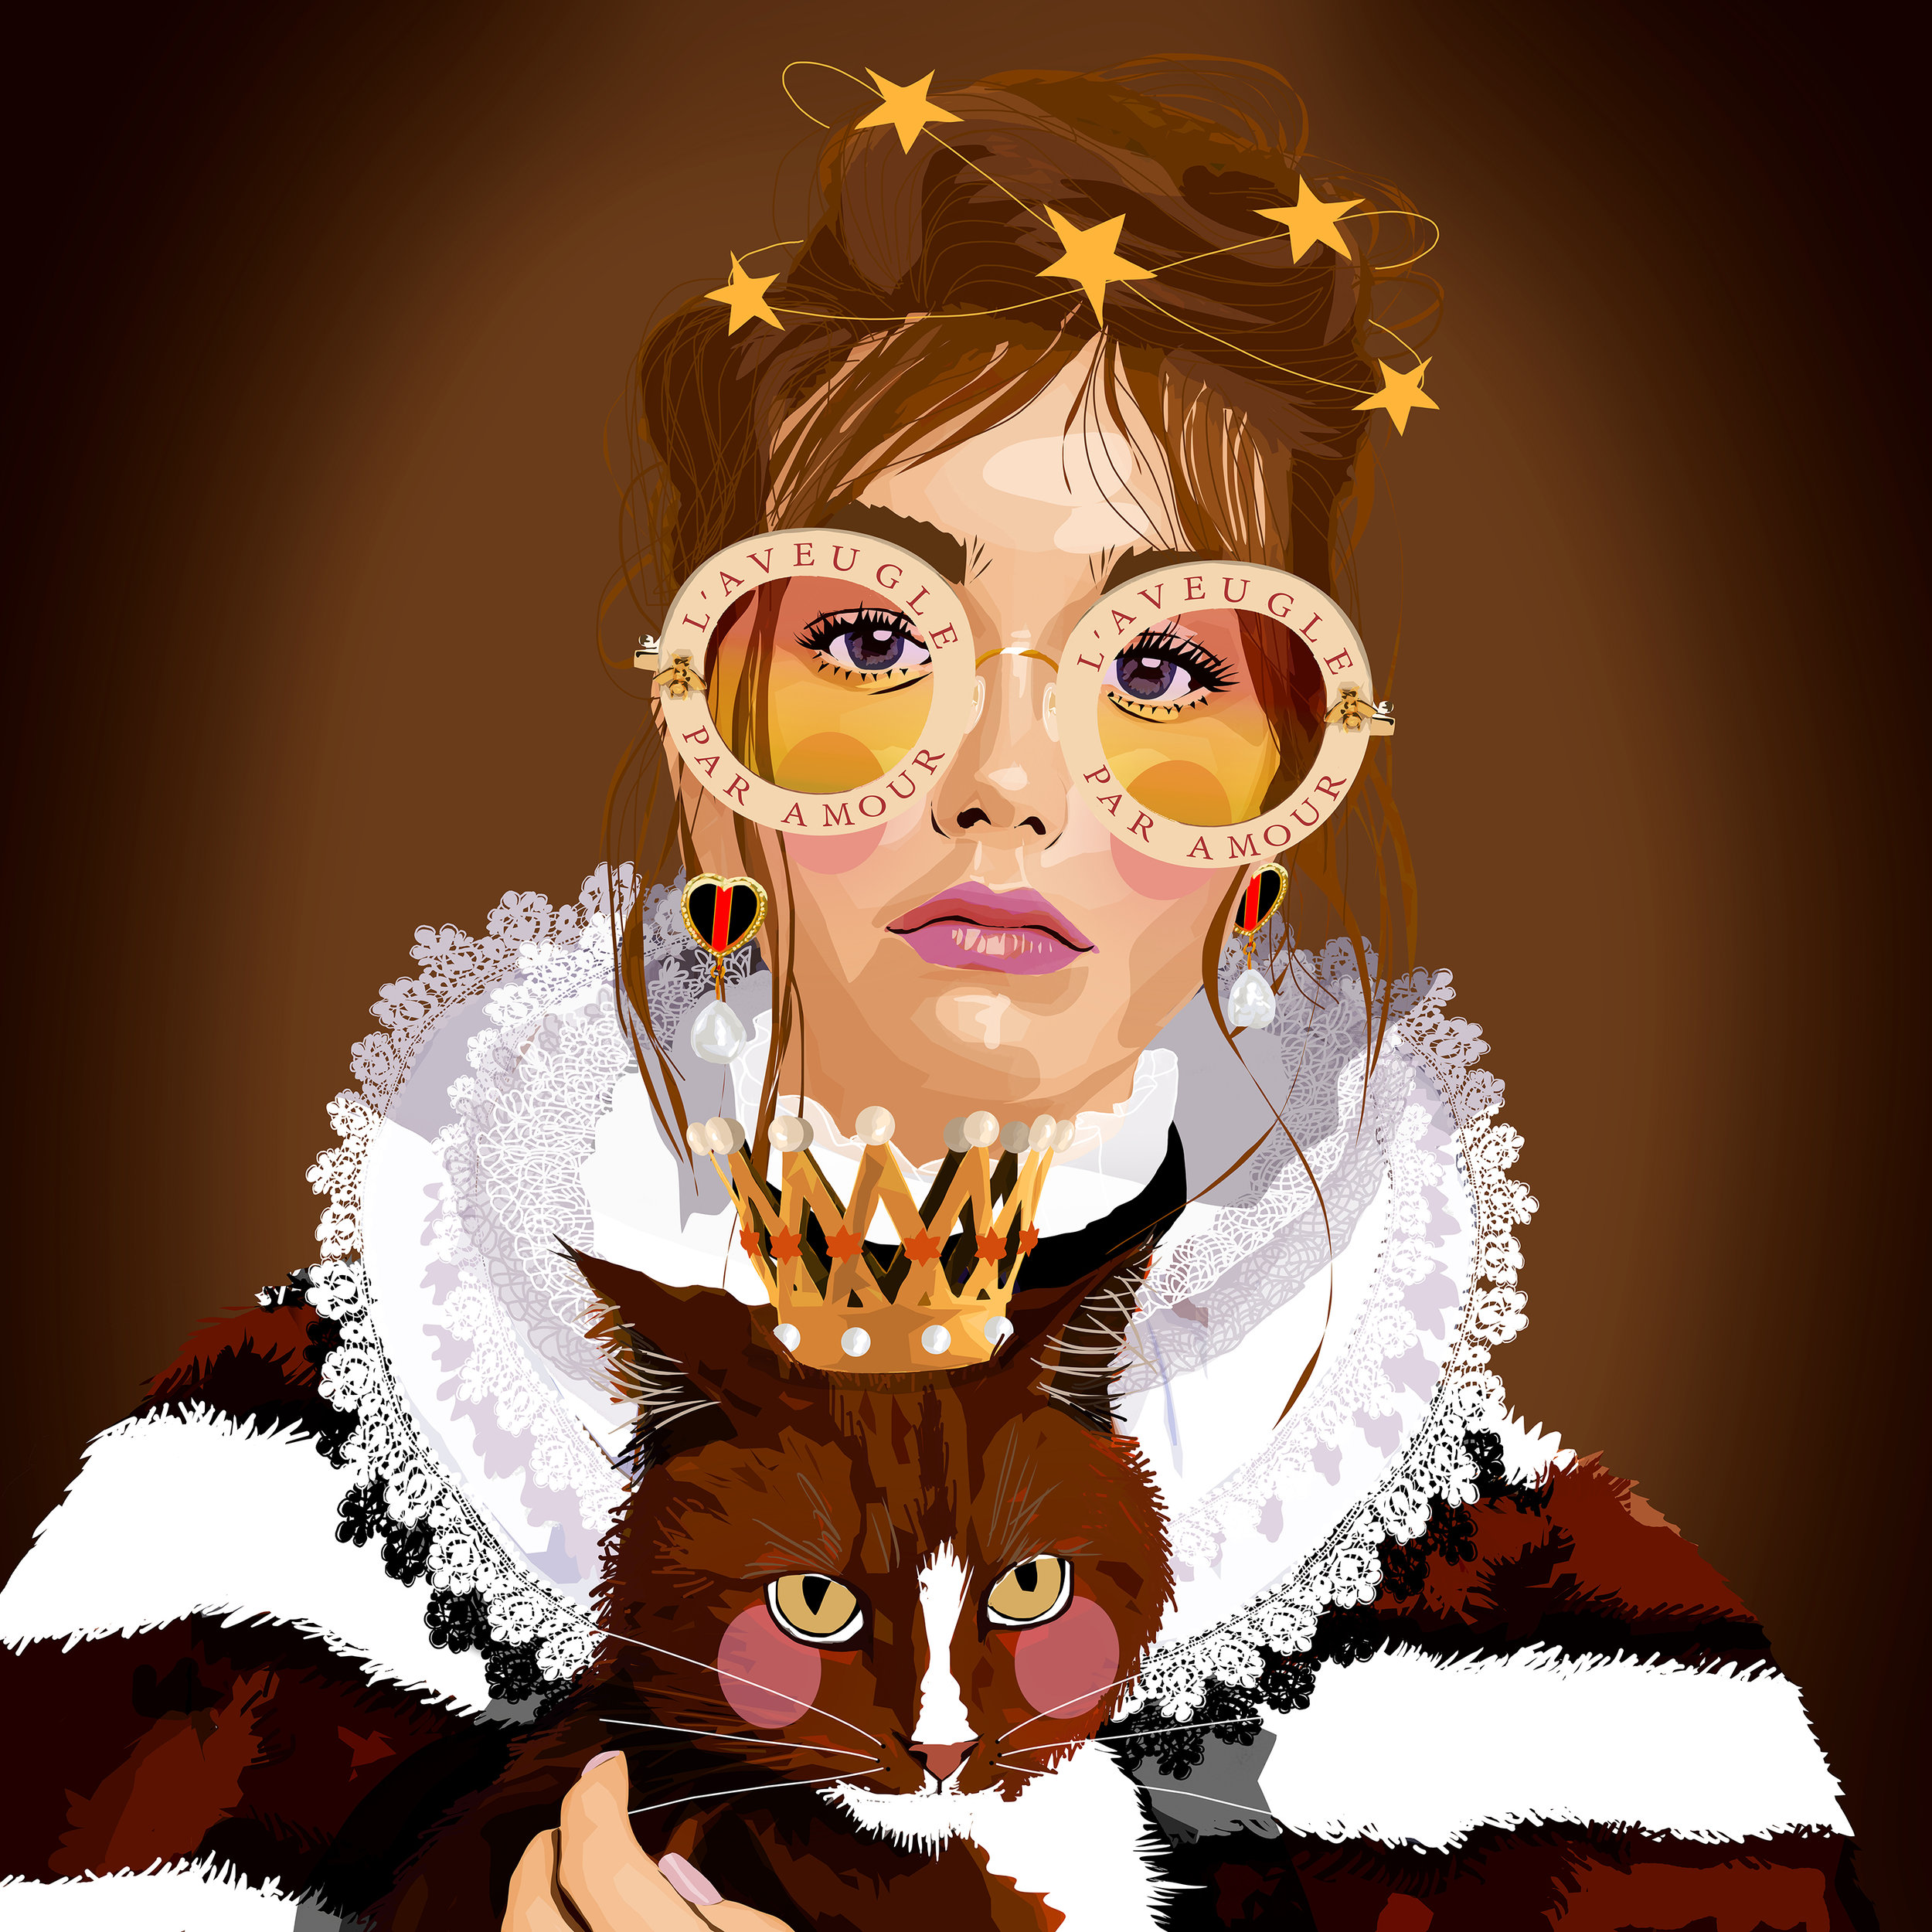 Gucci Girl Portrait made for decoration of an office space